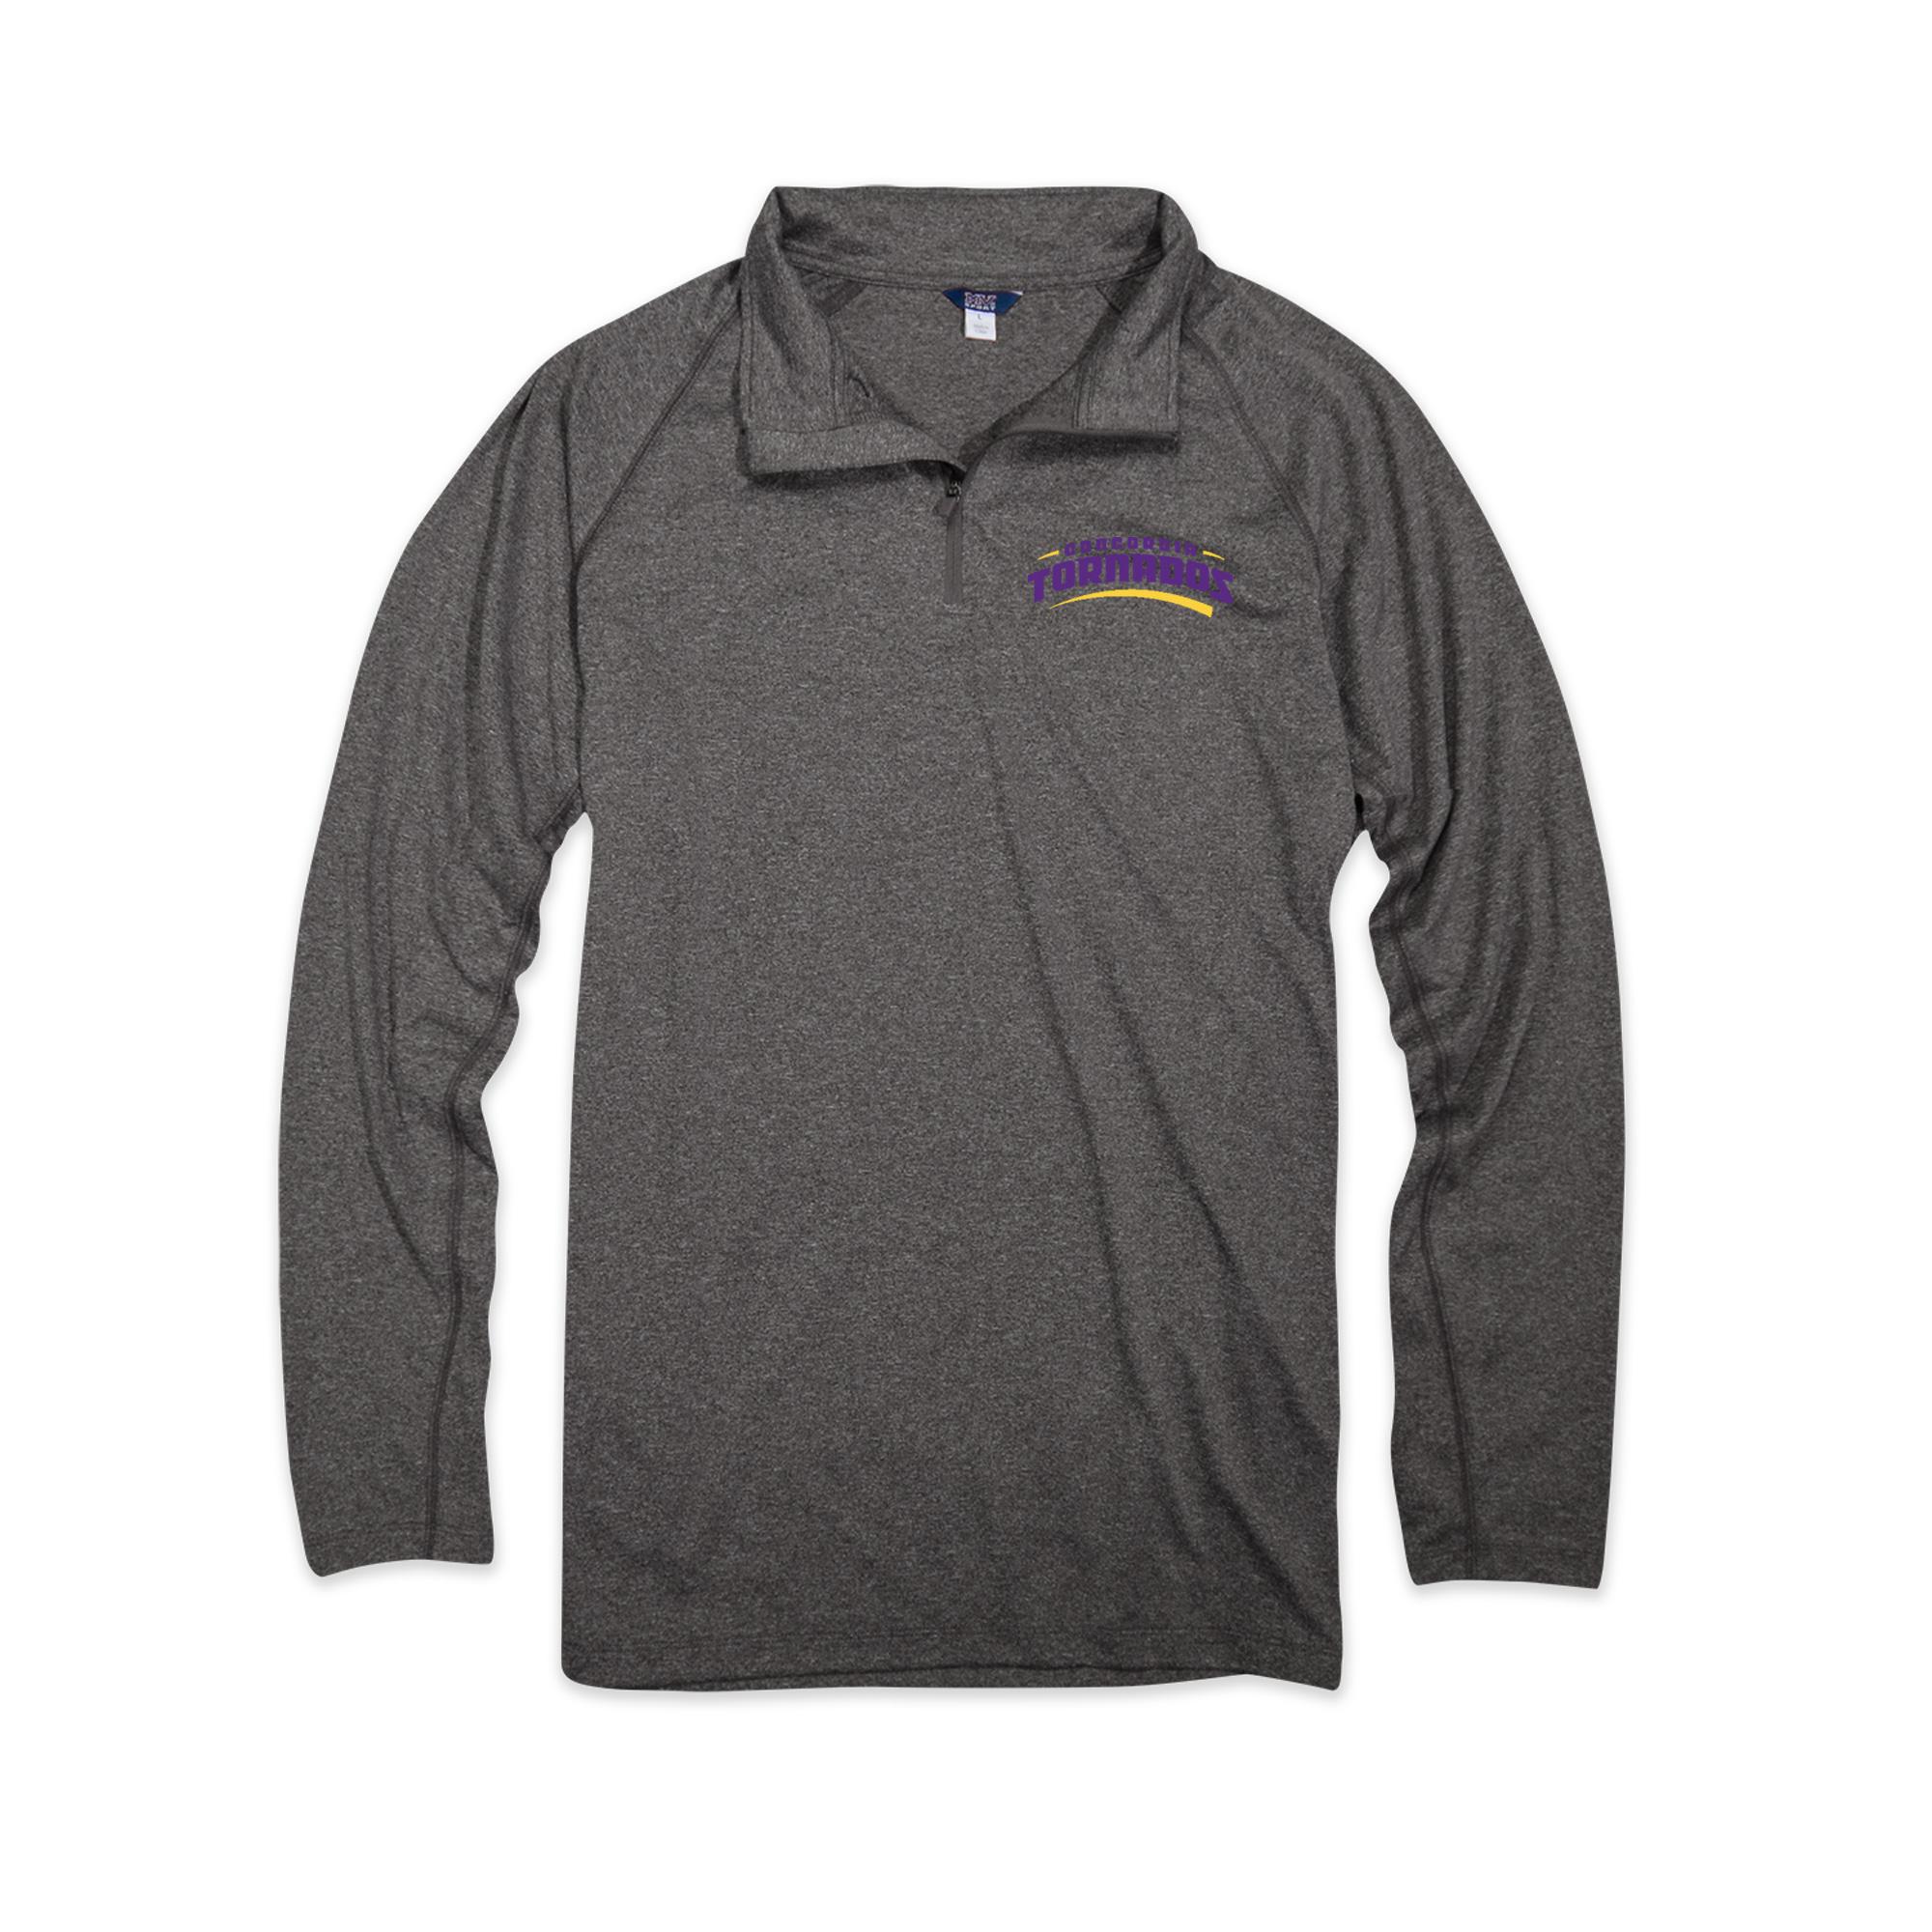 Athletic Long Sleeve Quarter Zip - Heather Black